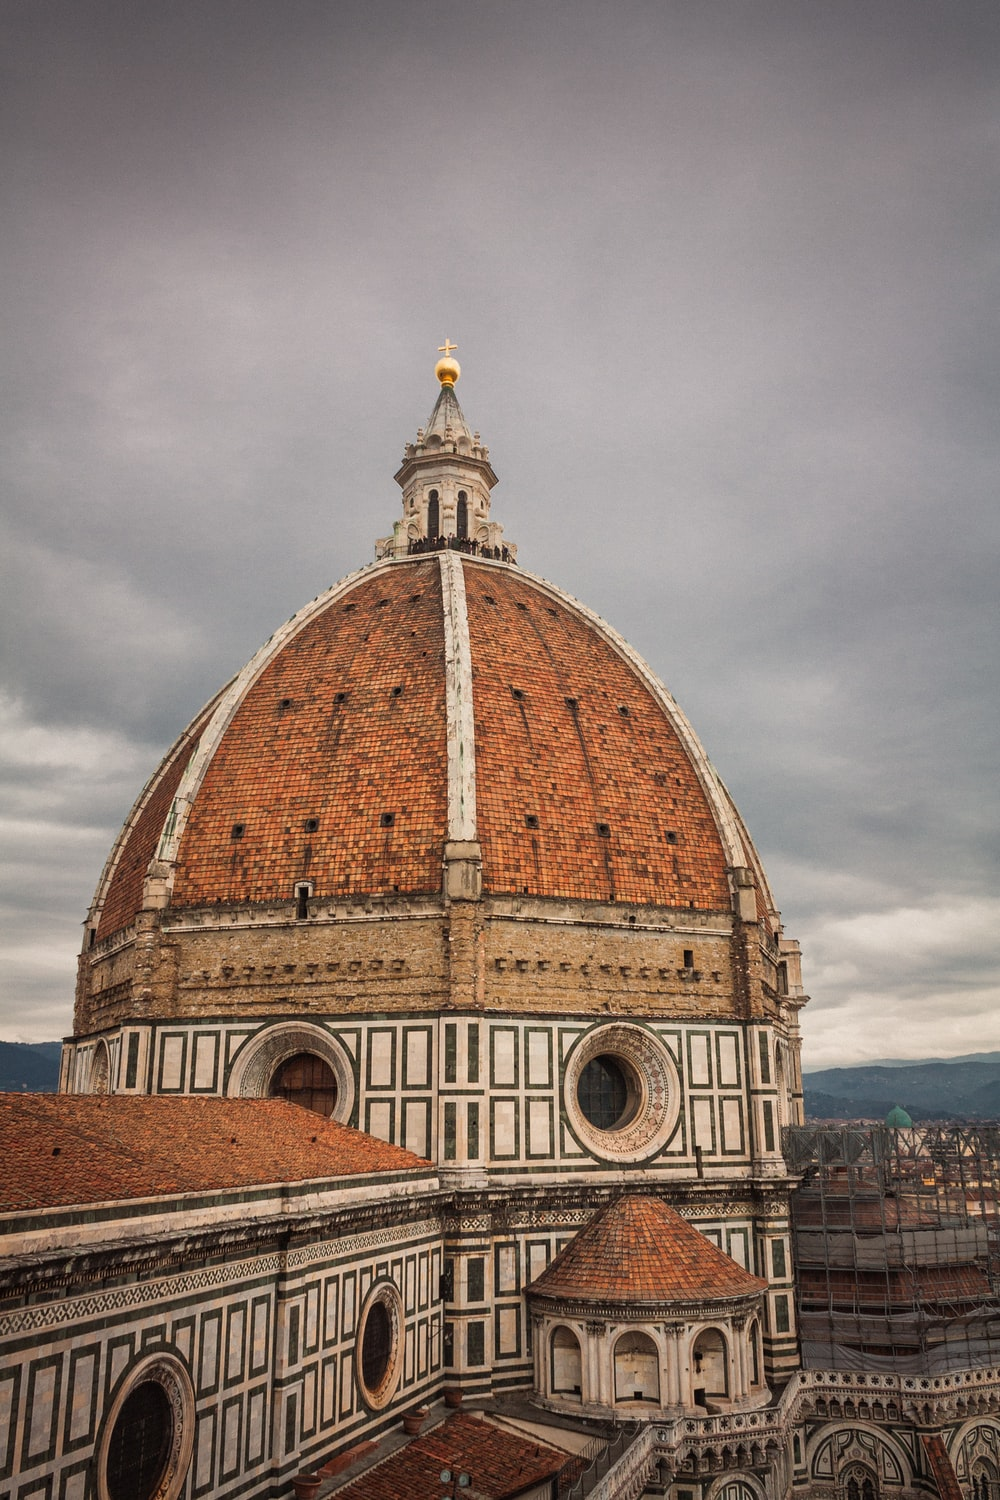 brown dome building under gray clouds